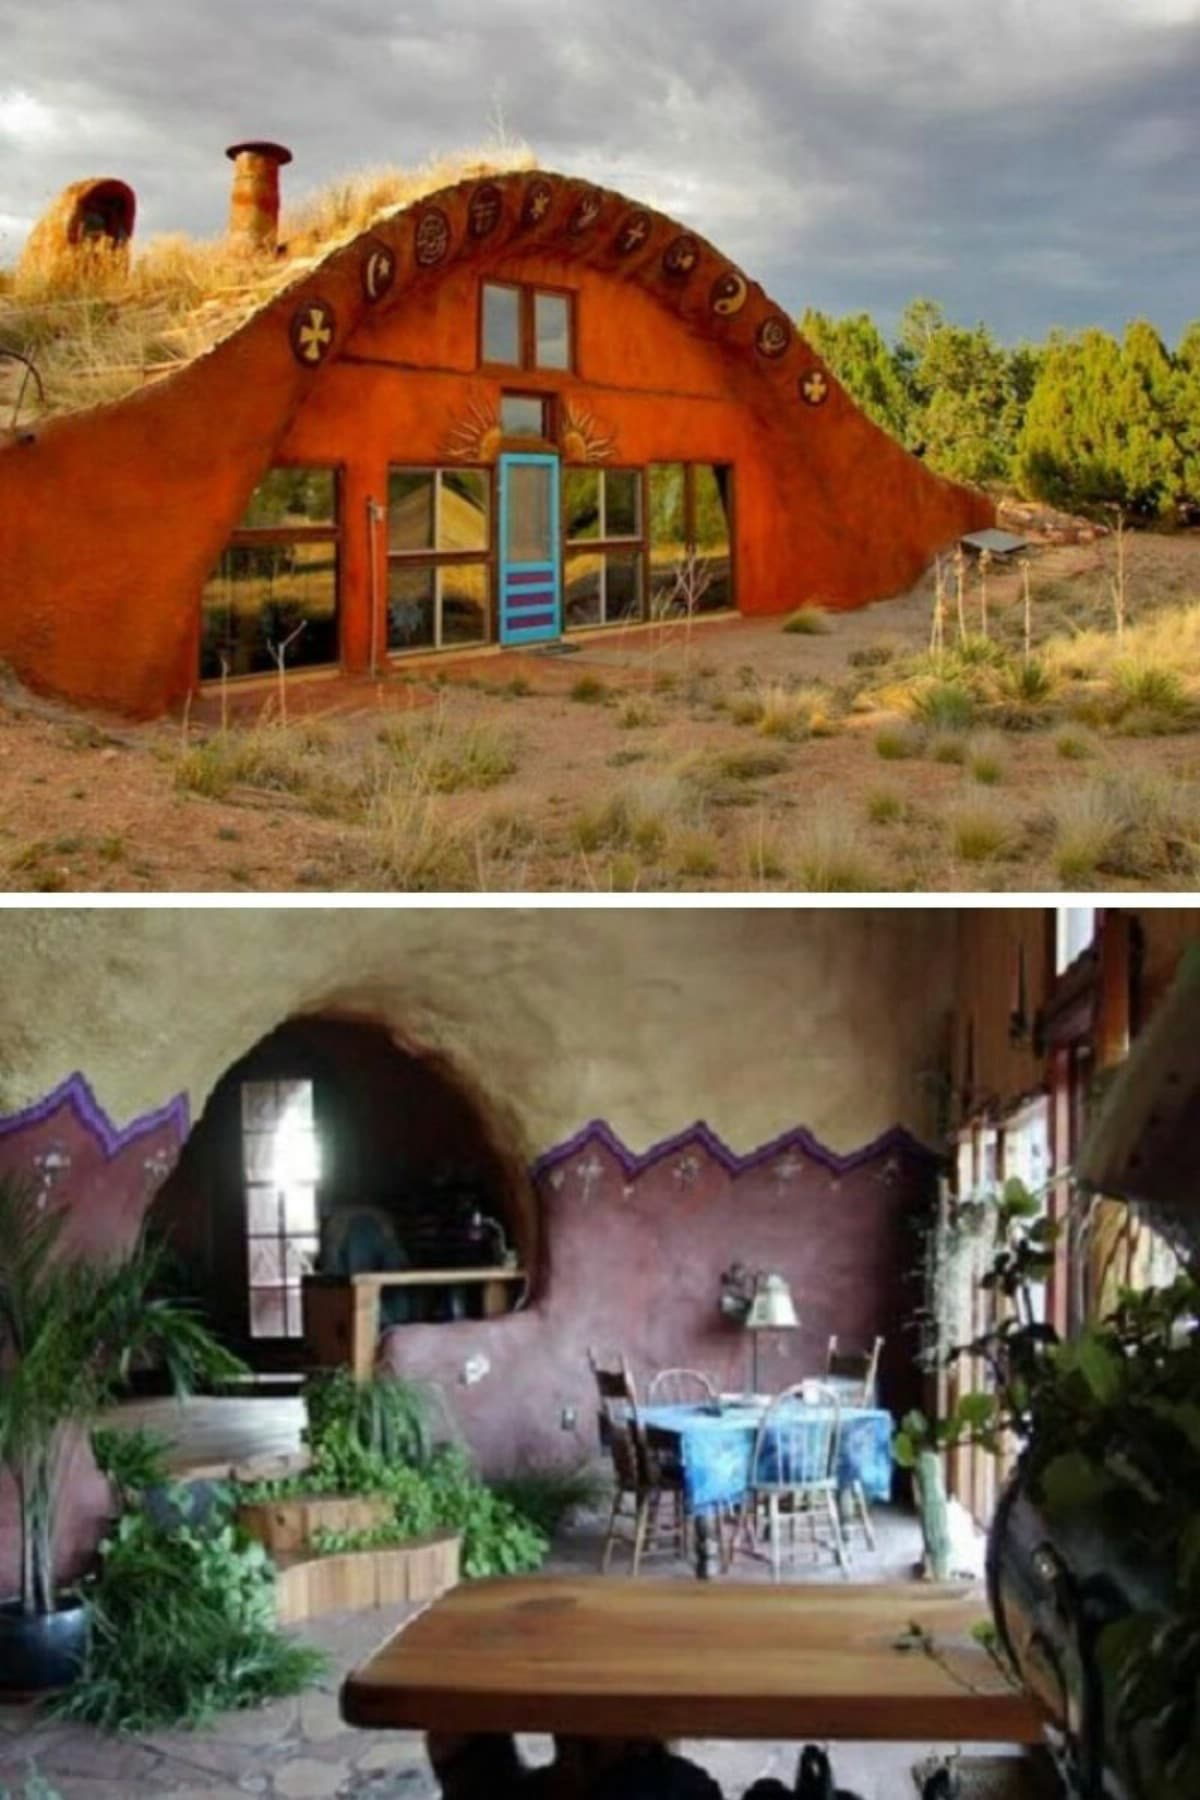 Cody Lundin's Off-the-Grid Earthen Tiny House